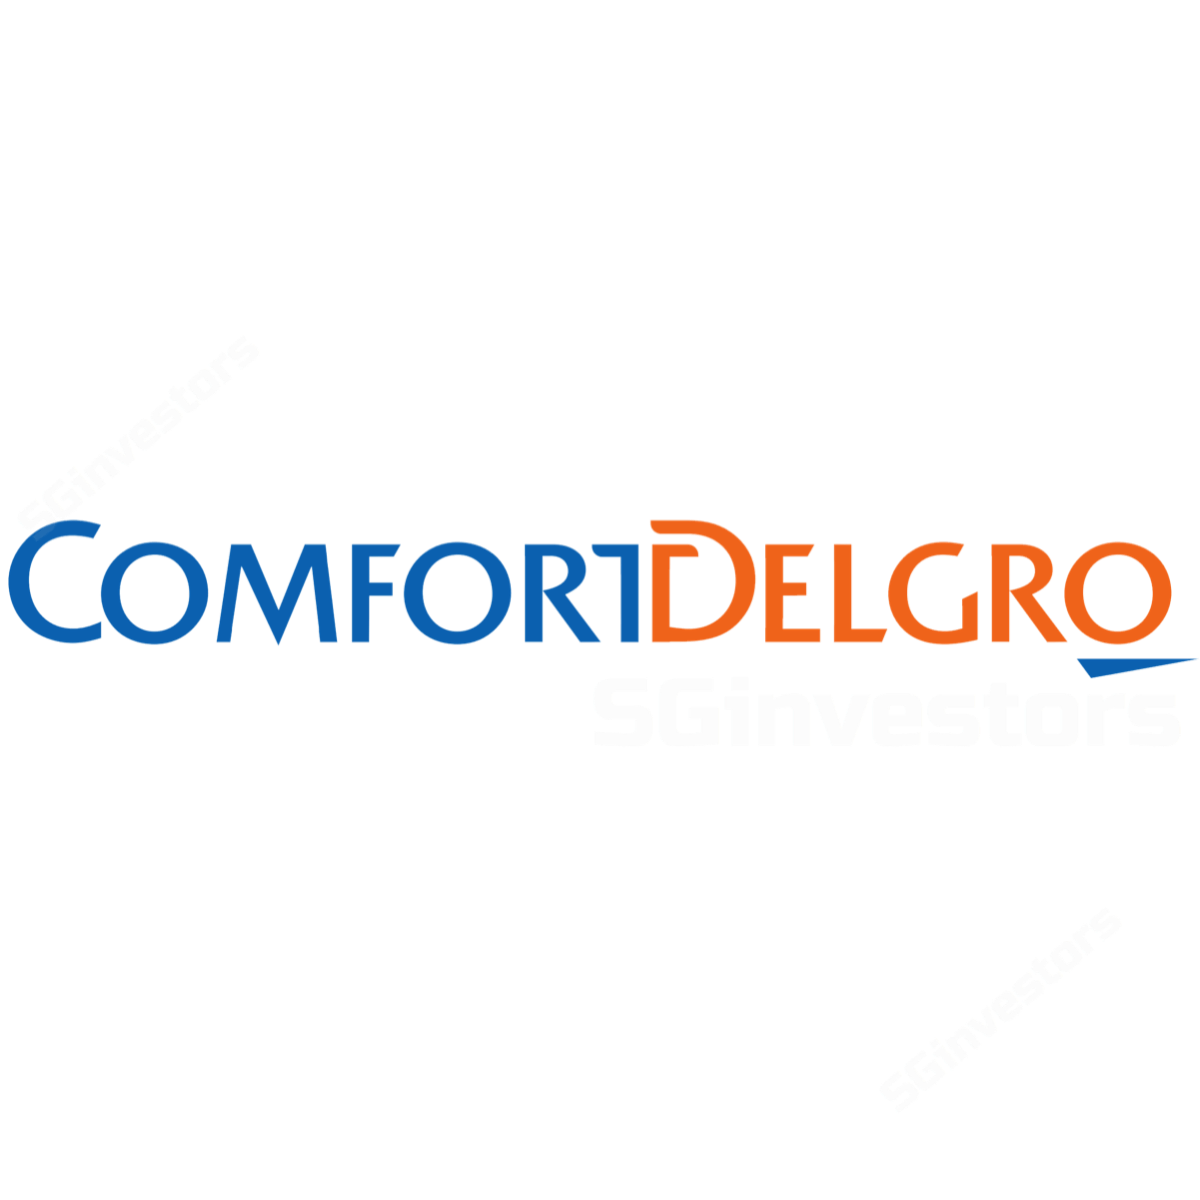 ComfortDelGro - CIMB Research 2017-02-12: Higher dividend payout was positive surprise